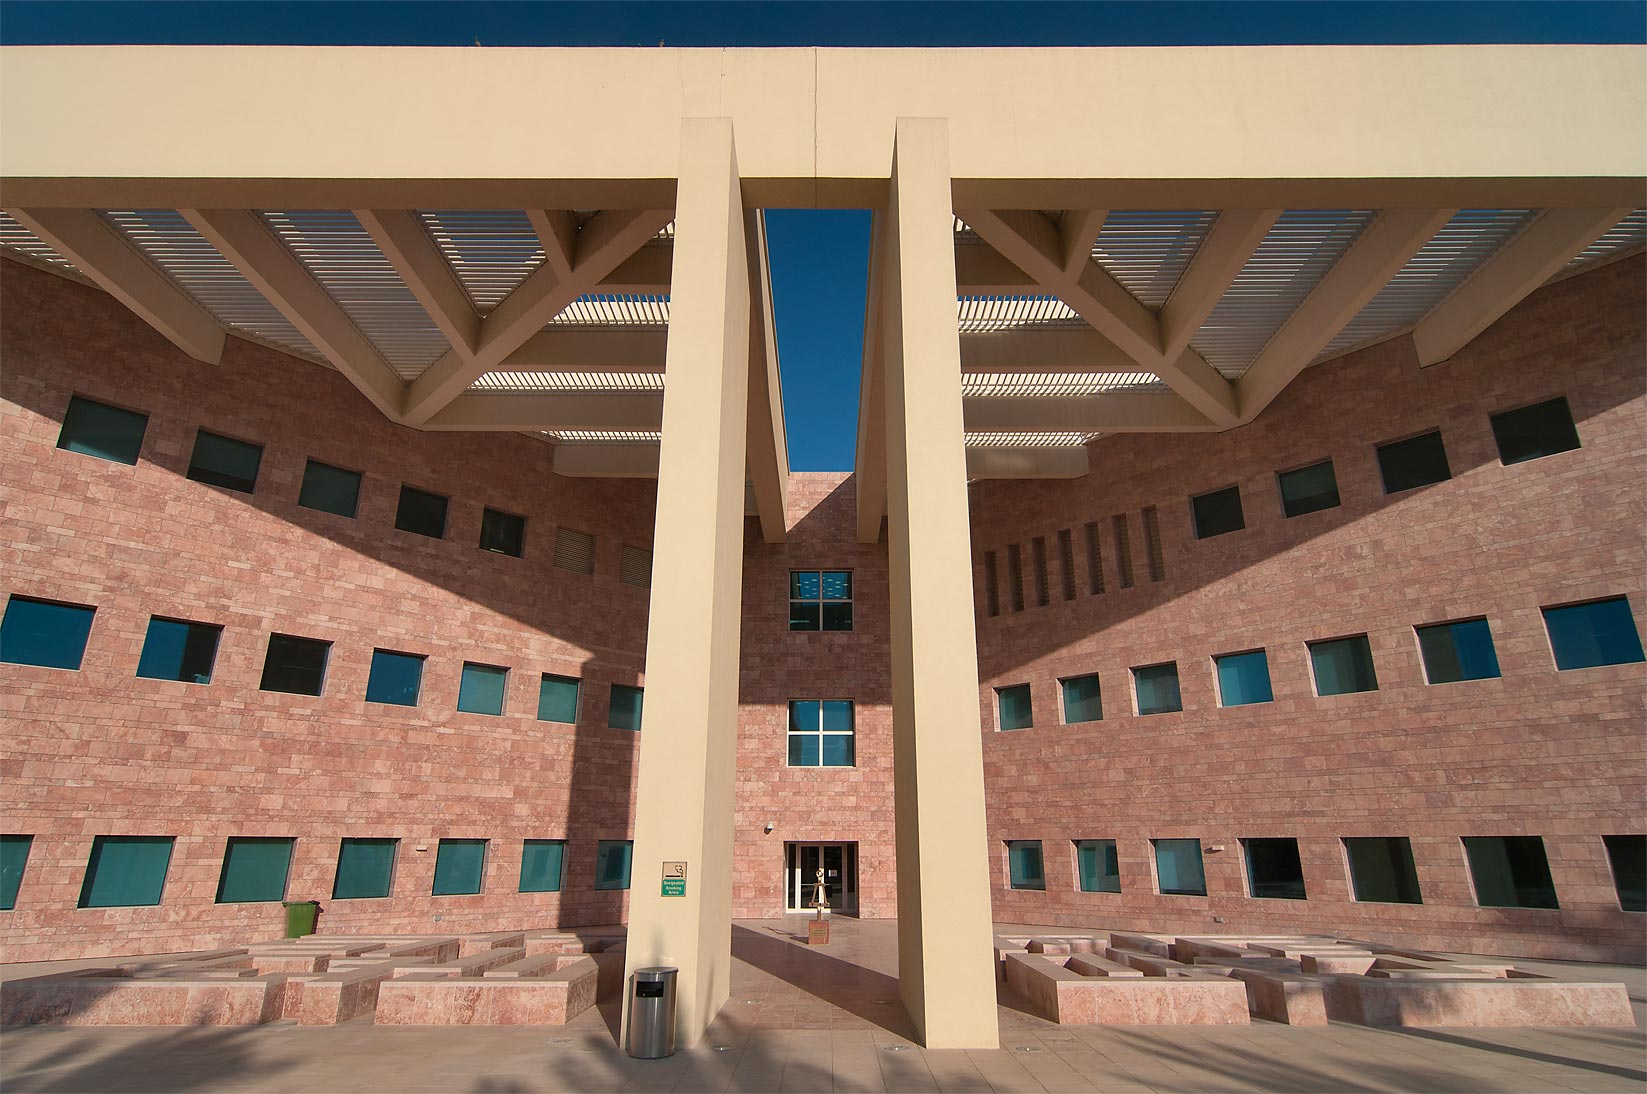 West entrance of TAMUQ research area (Texas A and...City campus, in full sun. Doha, Qatar